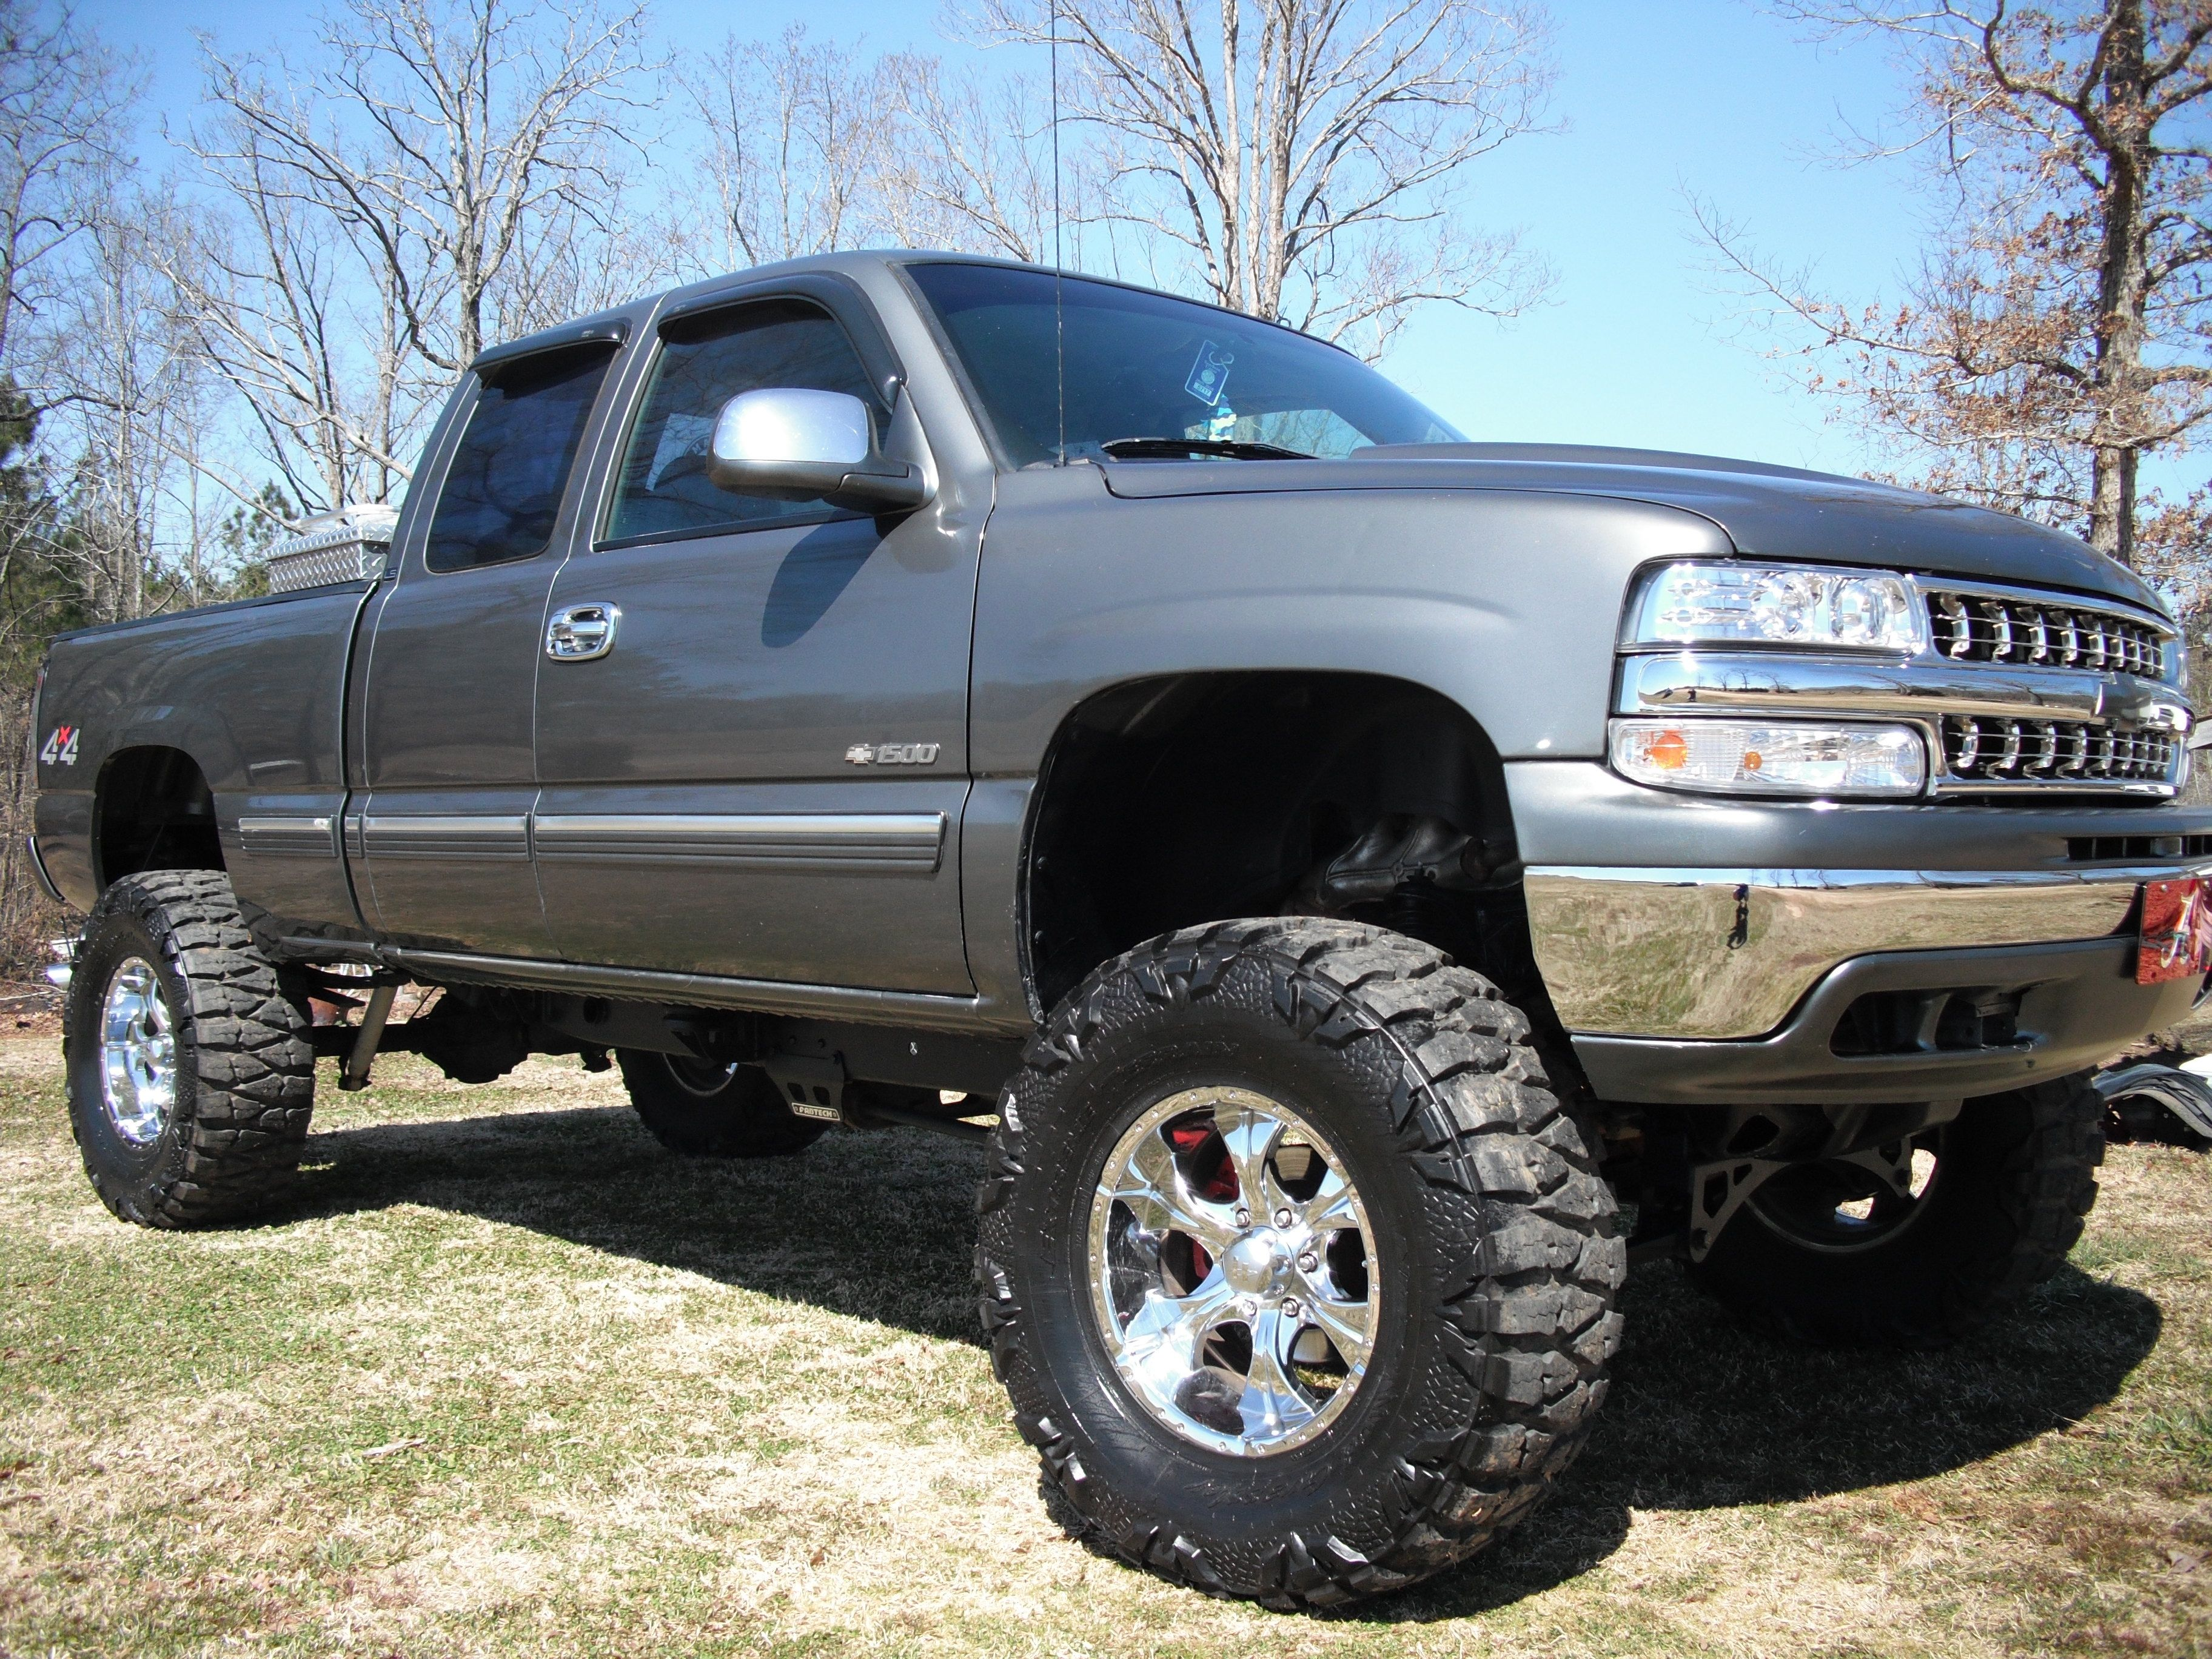 2003 Chevy Silverado Extended Cab Lifted Google Search Cars